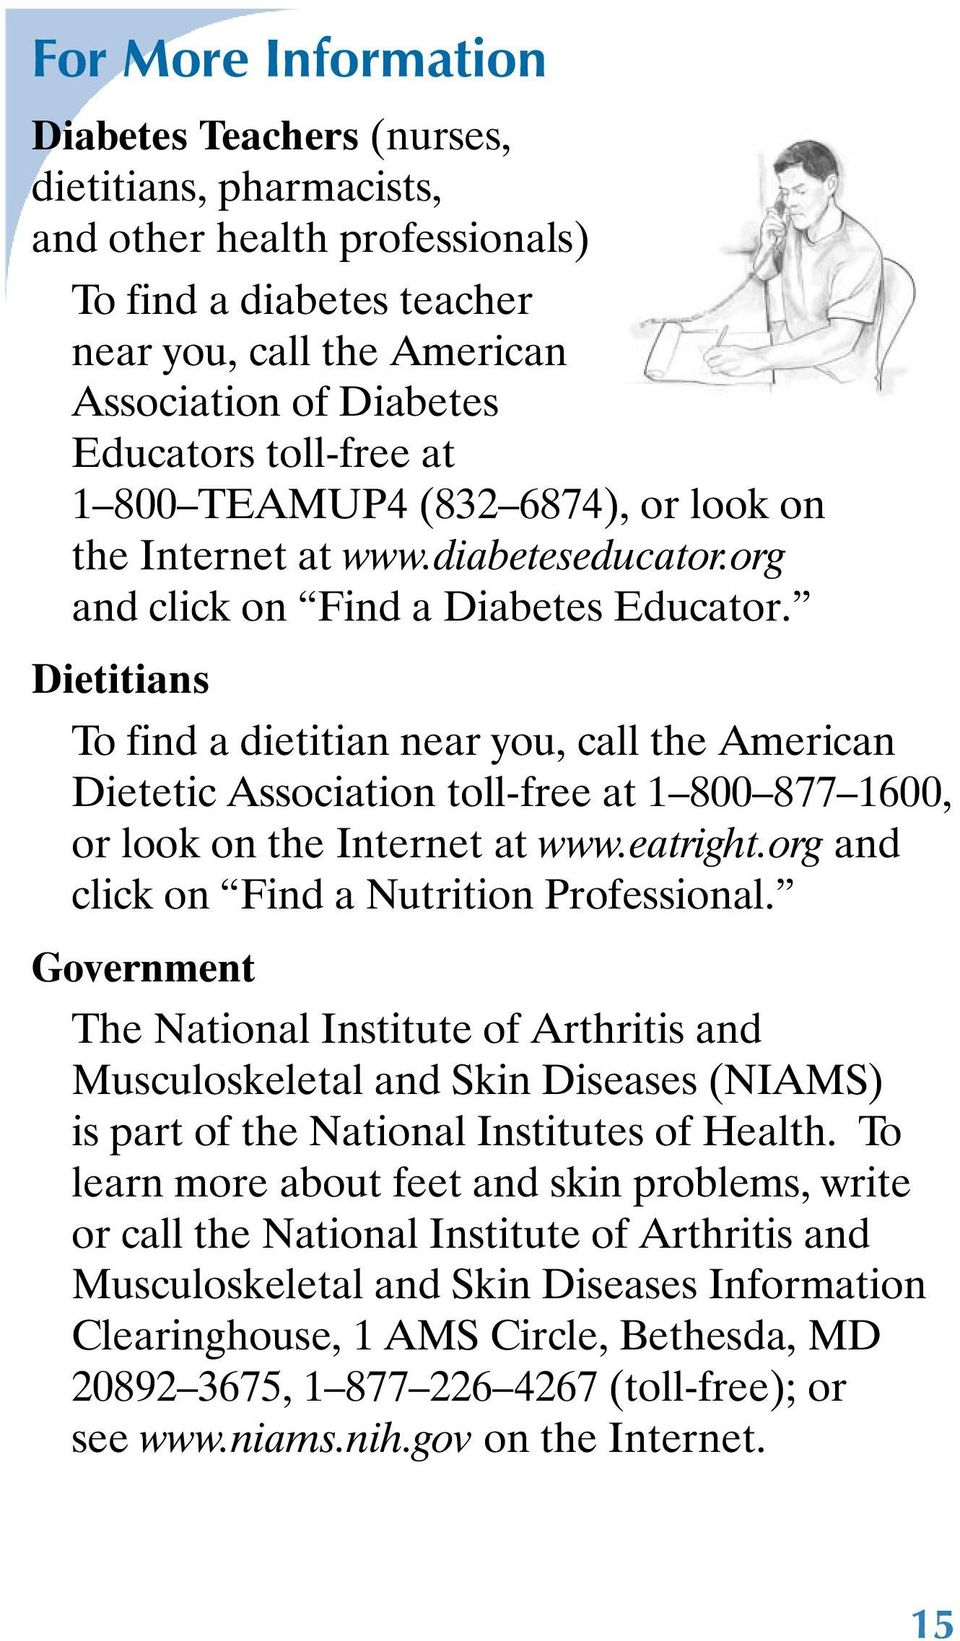 Dietitians To find a dietitian near you, call the American Dietetic Association toll-free at 1 800 877 1600, or look on the Internet at www.eatright.org and click on Find a Nutrition Professional.